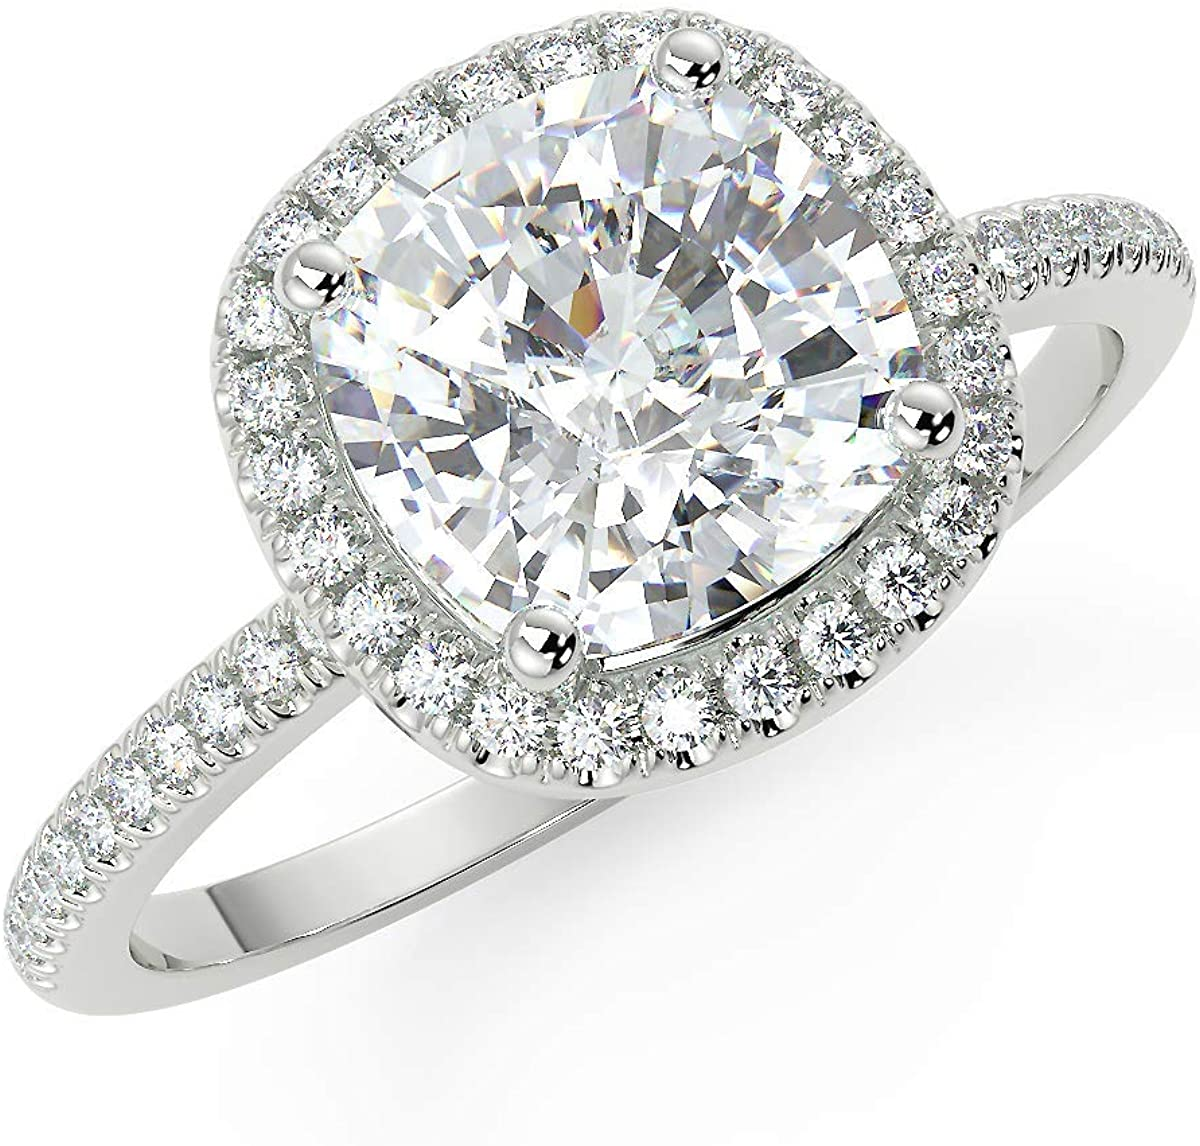 San Moissan Moissanite Engagement Ring in Halo Setting with 1.70ct (7mm) G-H Cushion Brilliant in .925 Sterling Silver for Women